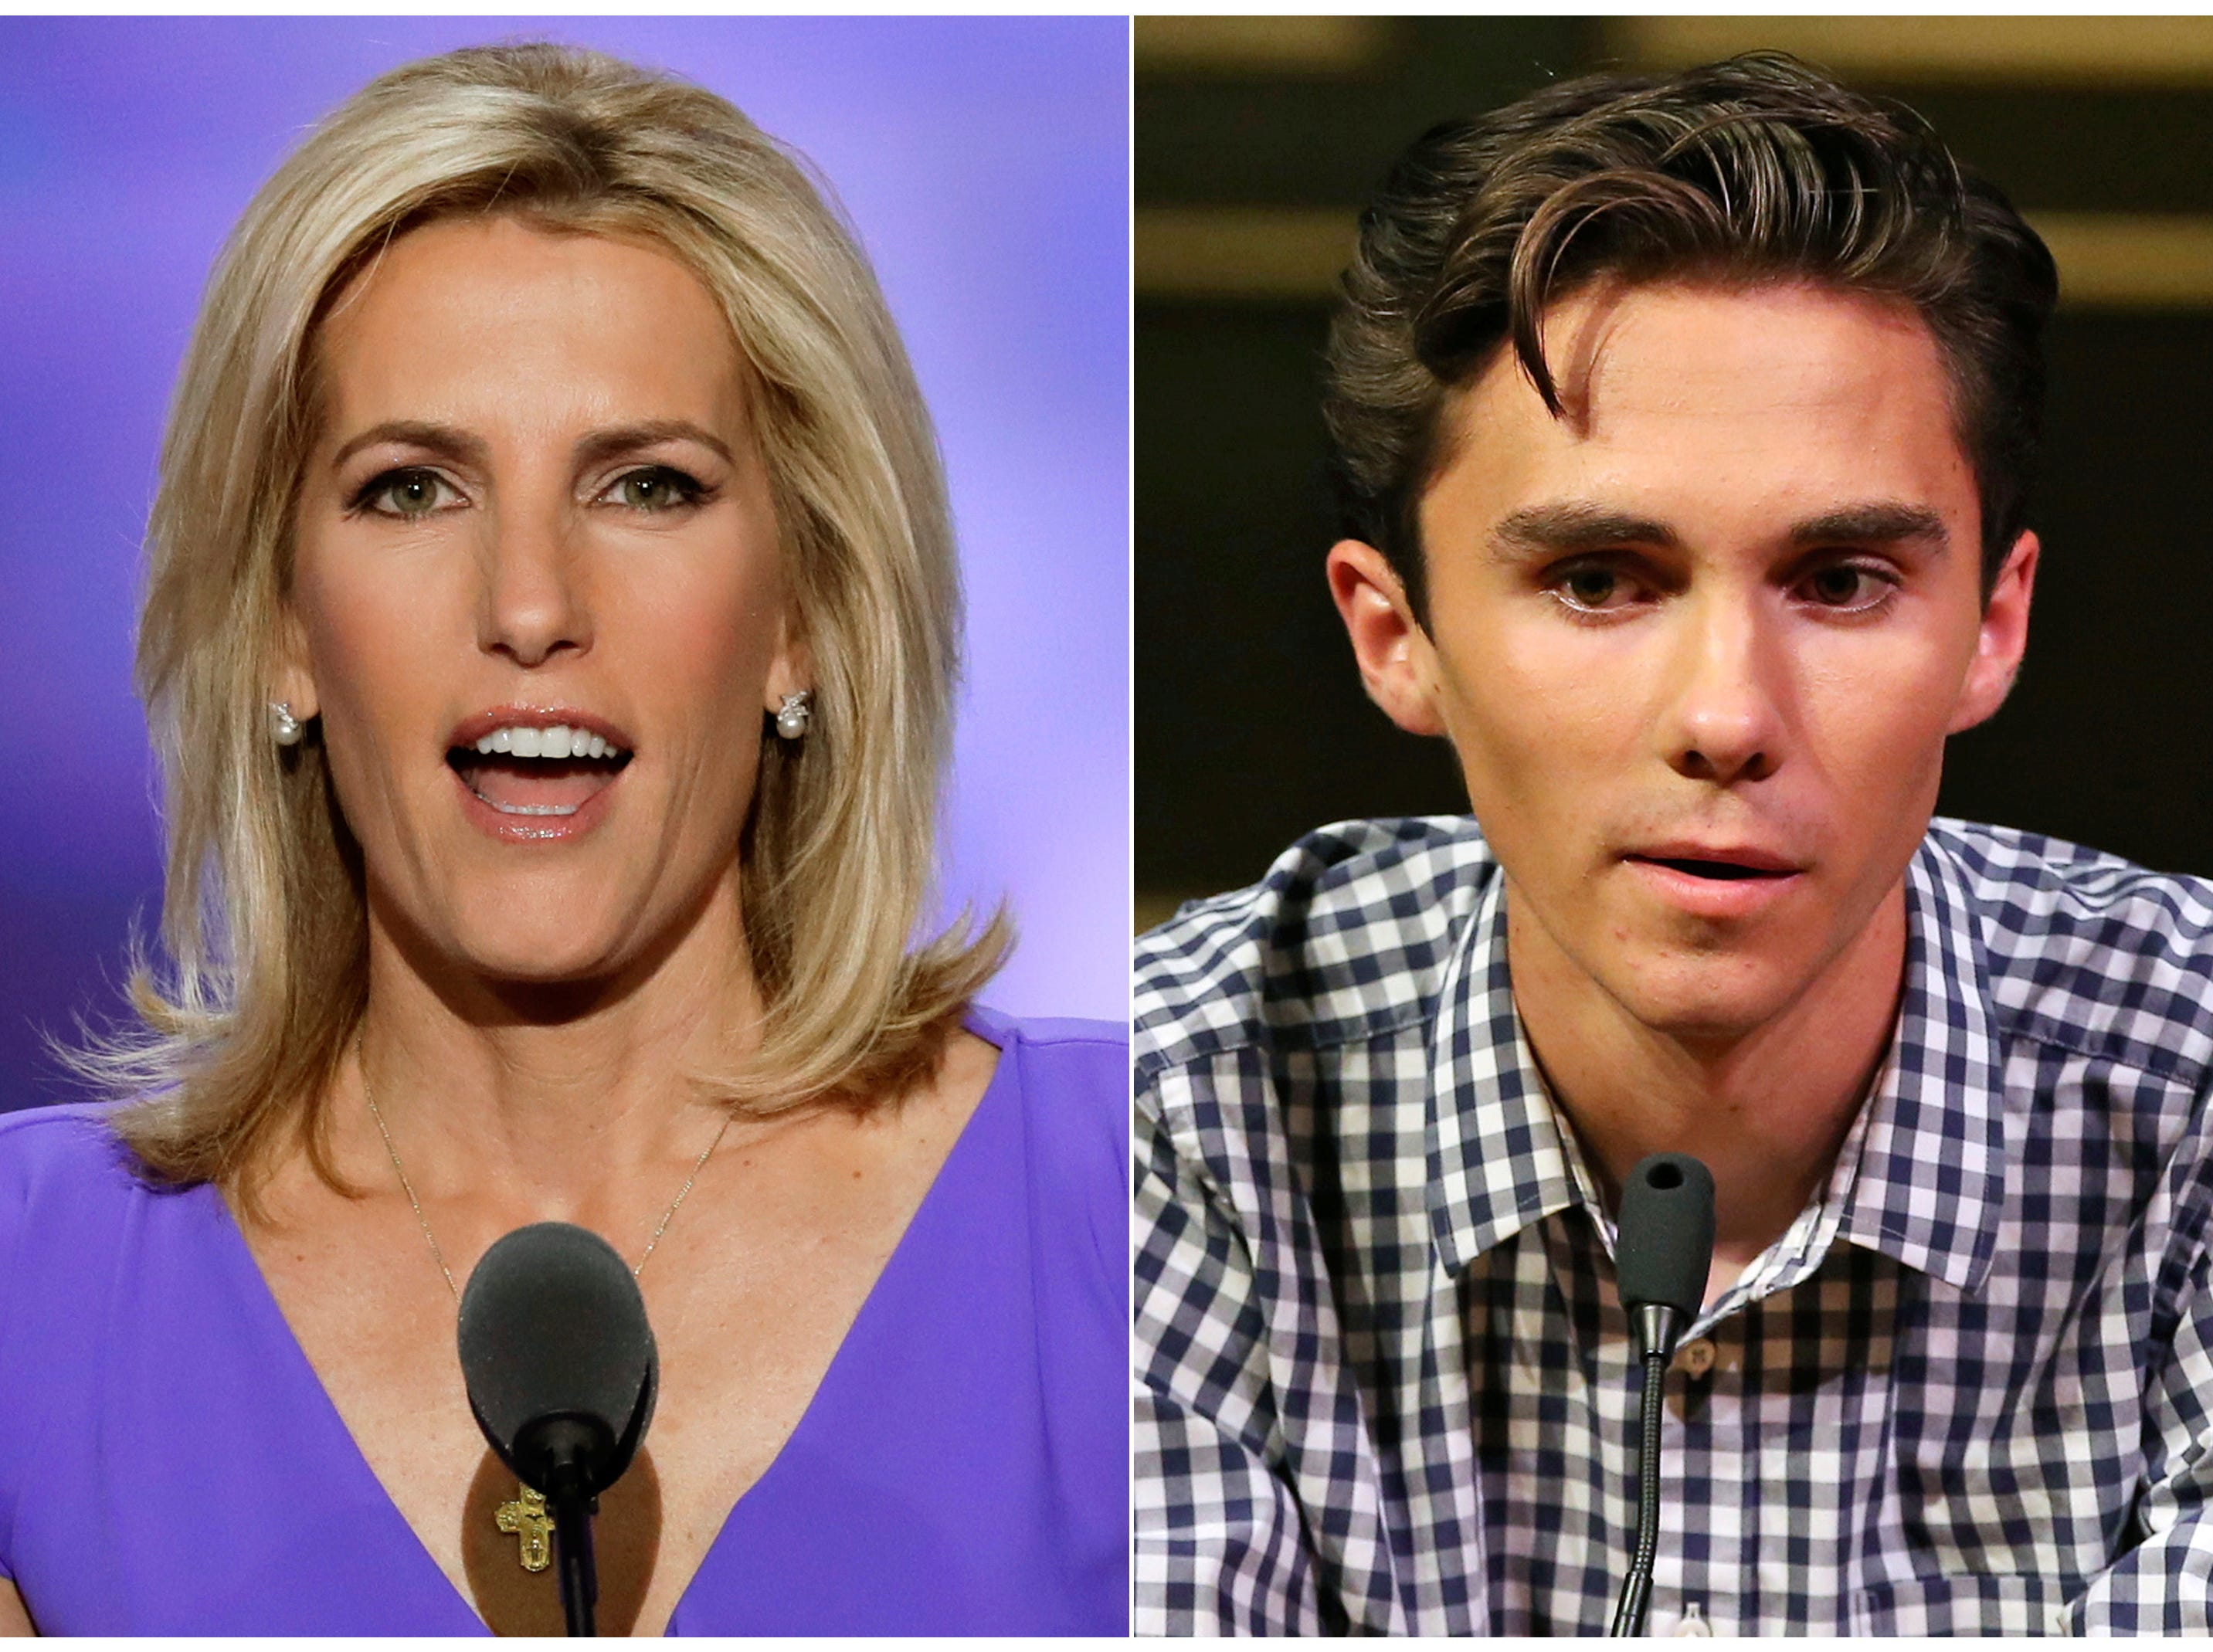 In this combination photo, Fox News personality Laura Ingraham, left, speaks at the Republican National Convention in Cleveland on July 20, 2016 and David Hogg, a student survivor from Marjory Stoneman Douglas High School in Parkland, Fla., speaks at a rally for common sense gun legislation in Livingston, N.J. on  Feb. 25, 2018. Some big name advertisers dropped Ingraham after she publicly criticized Hogg on social media.